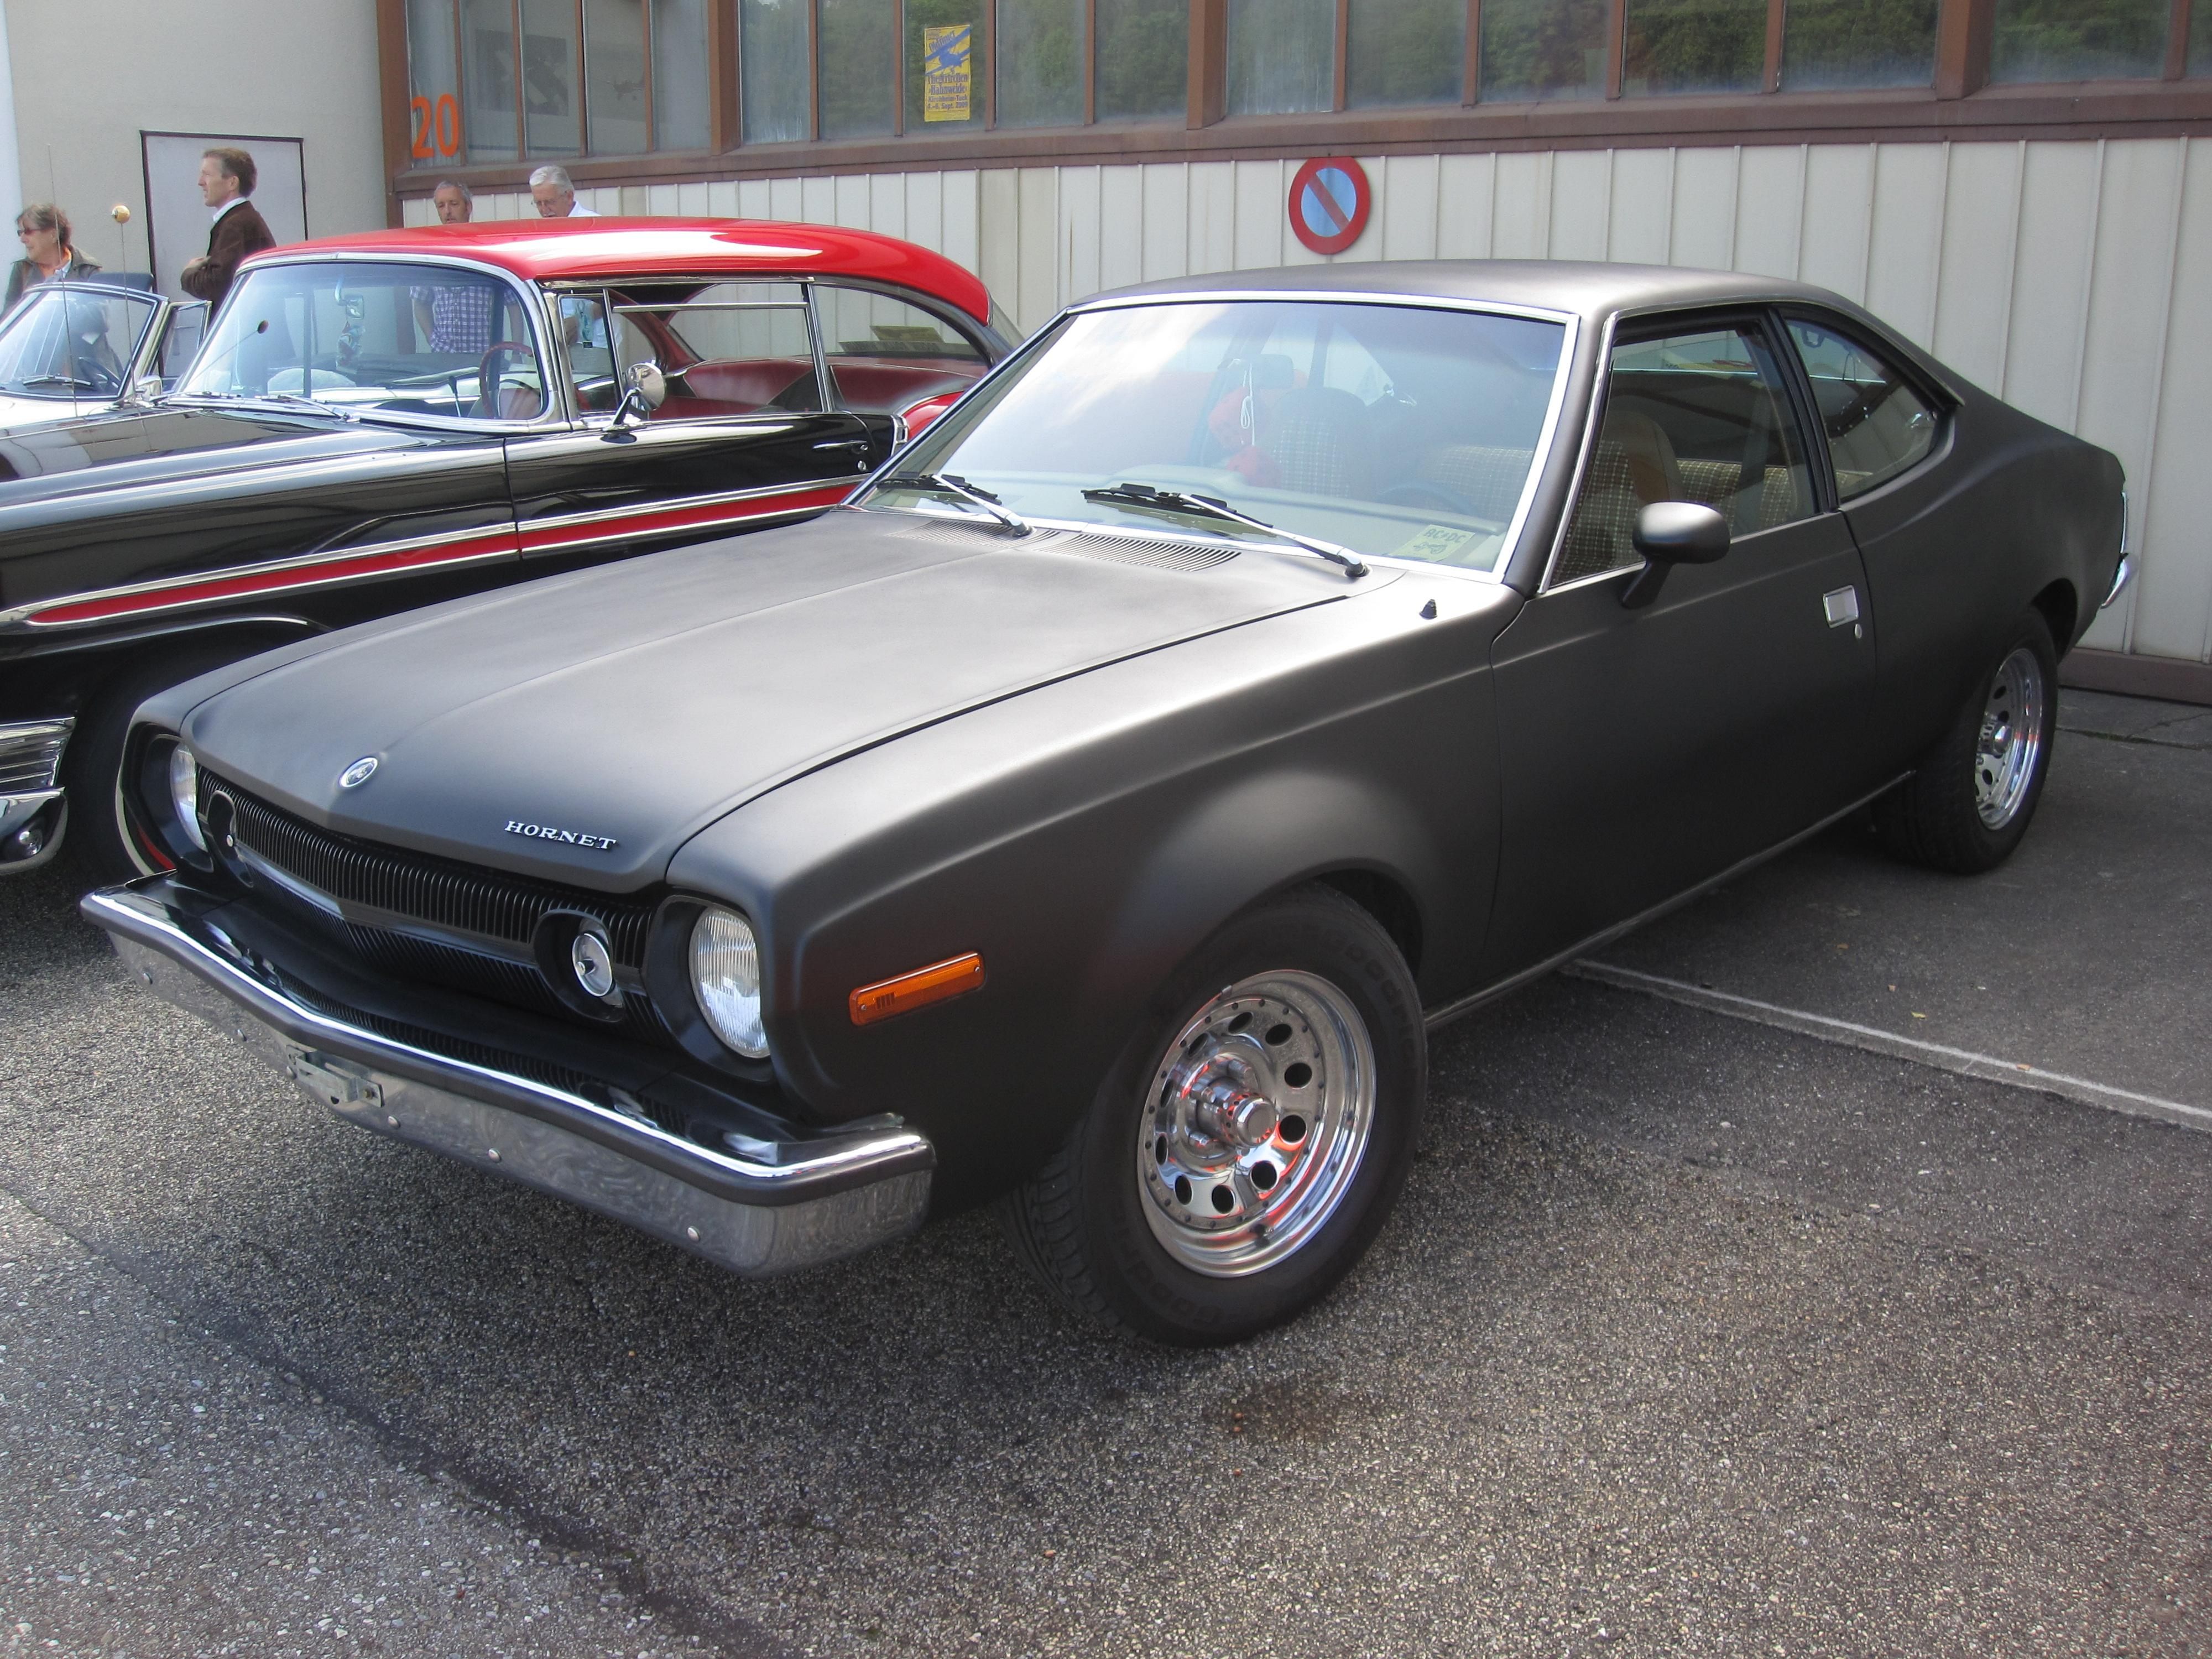 CustomAces's 1973 AMC Hornet